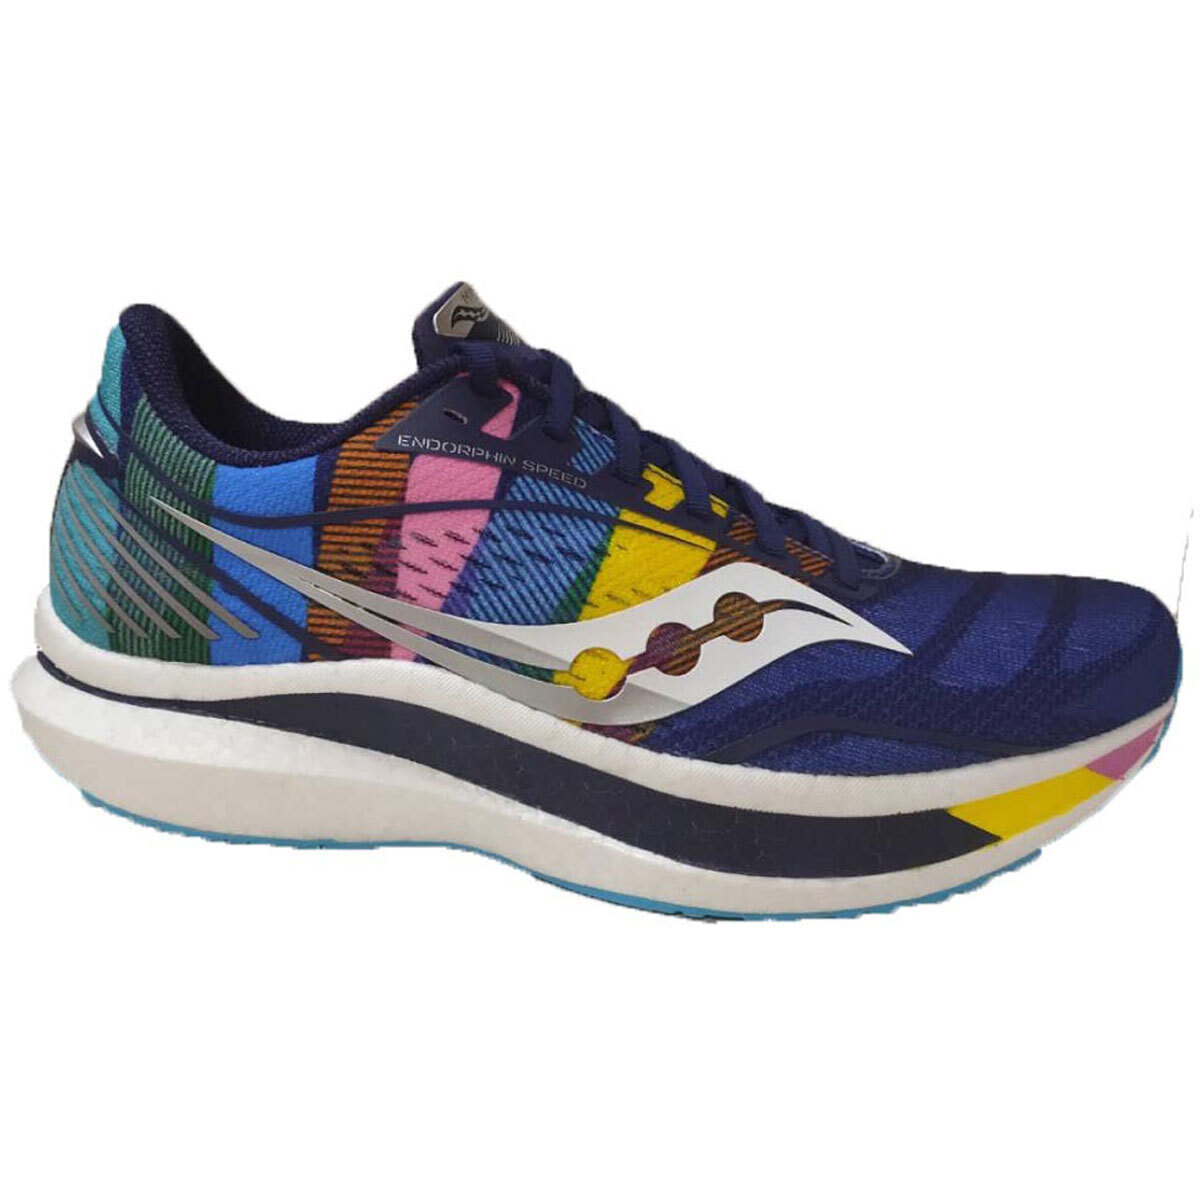 Women's Saucony Endorphin Speed Running Shoe - Color: NYC - Size: 5 - Width: Regular, NYC, large, image 1